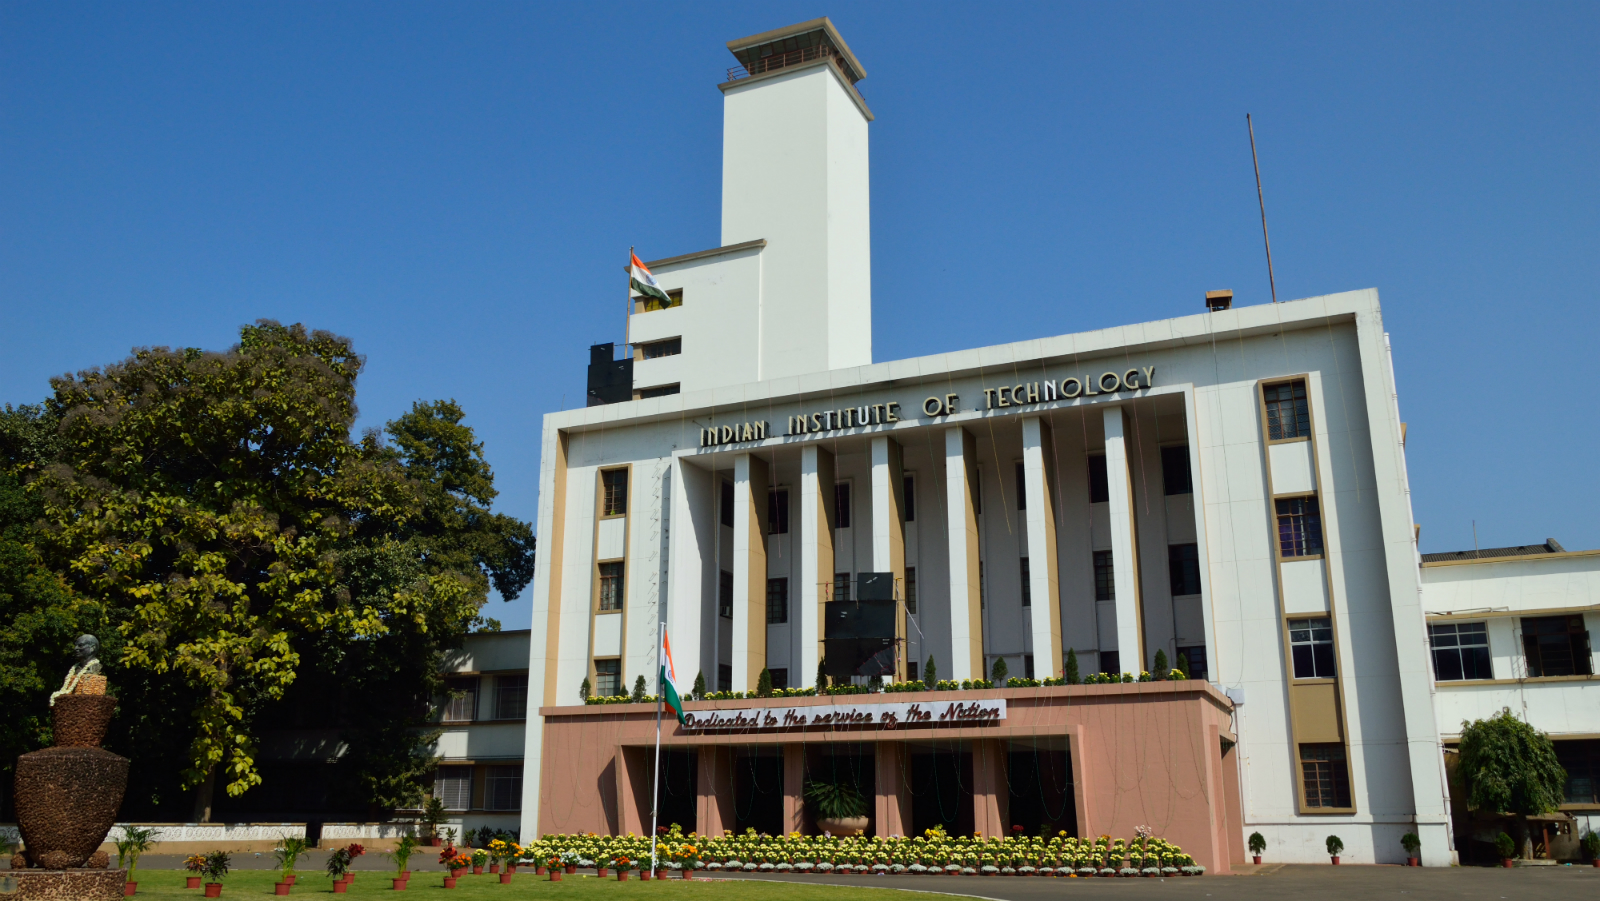 Indian Institute of Technology Kharagpur main building.